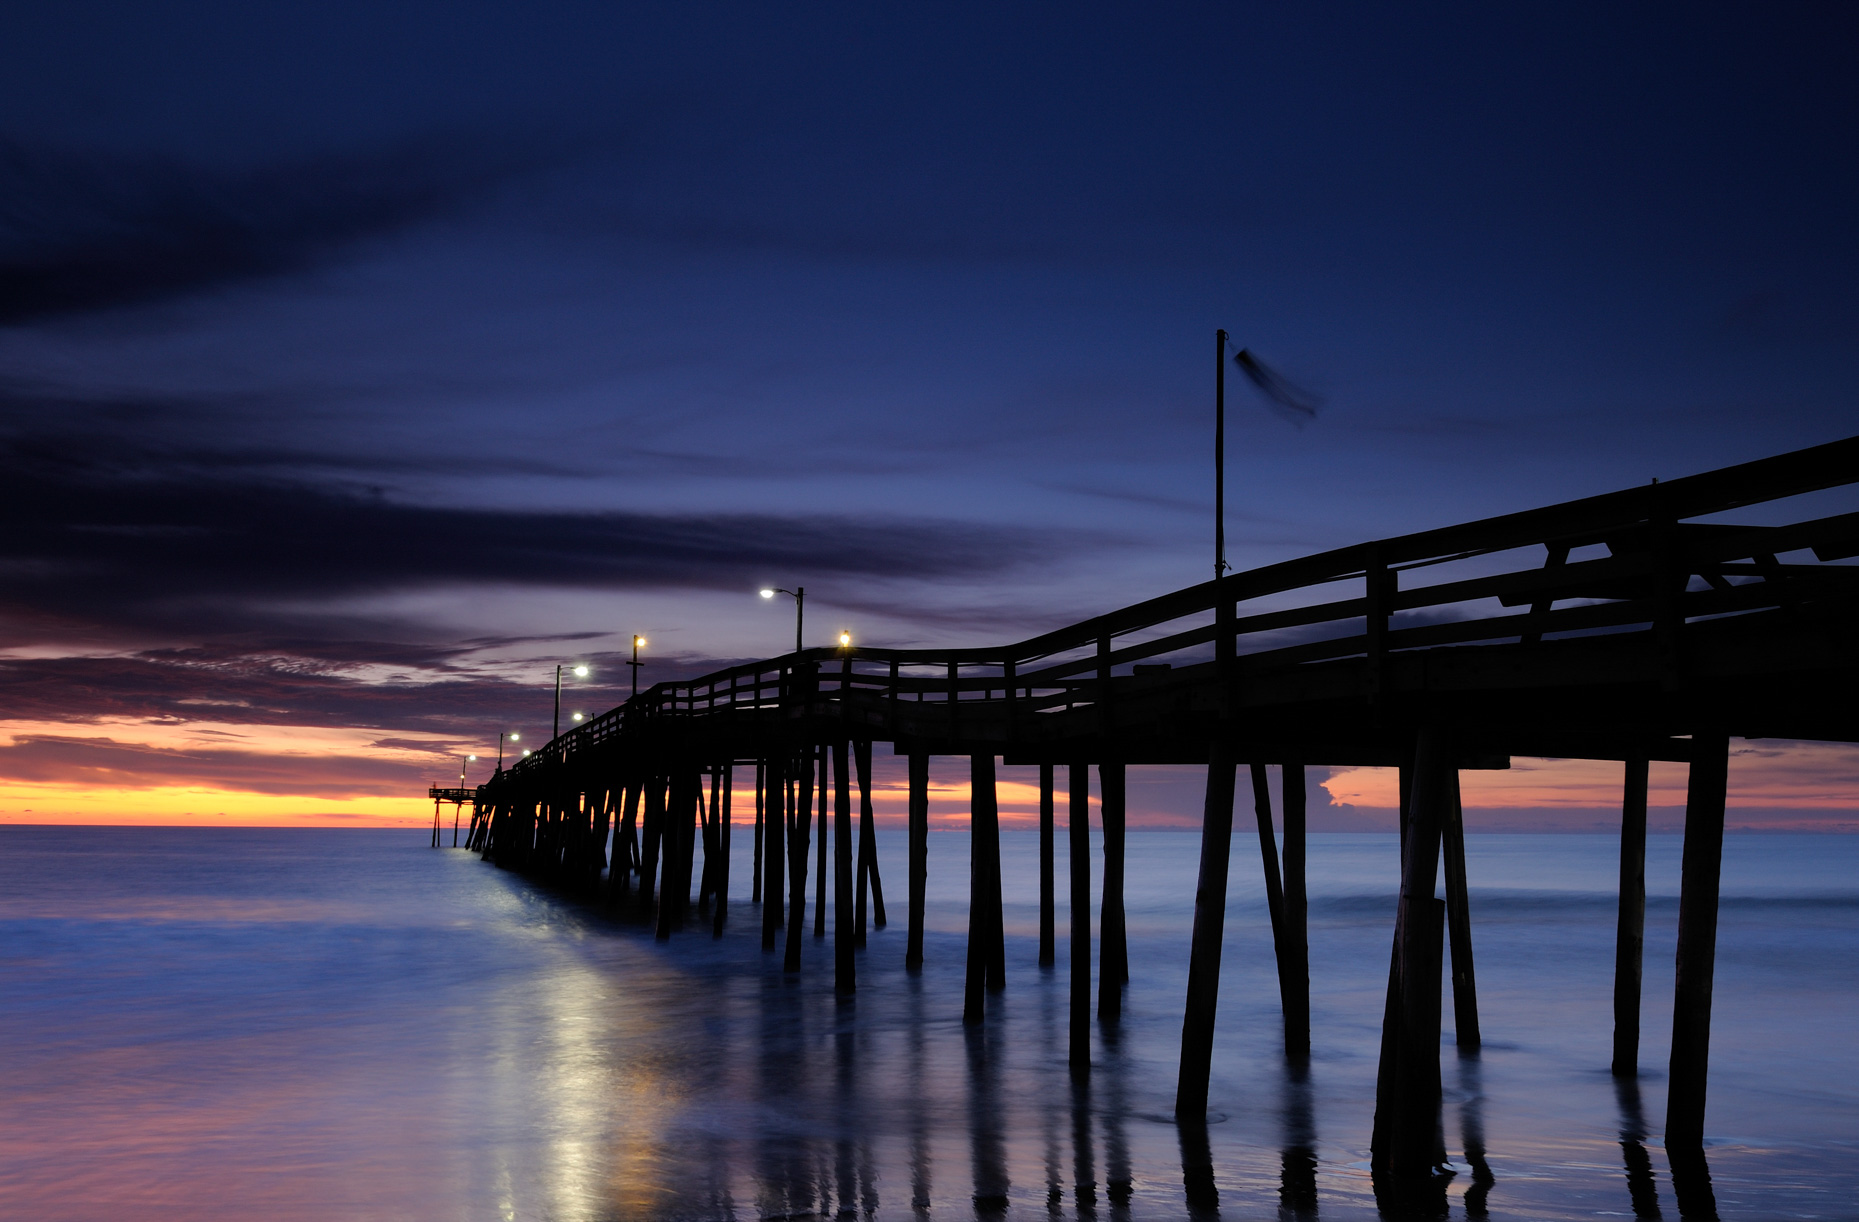 Serendipity (Nags Head Pier, North Carolina)